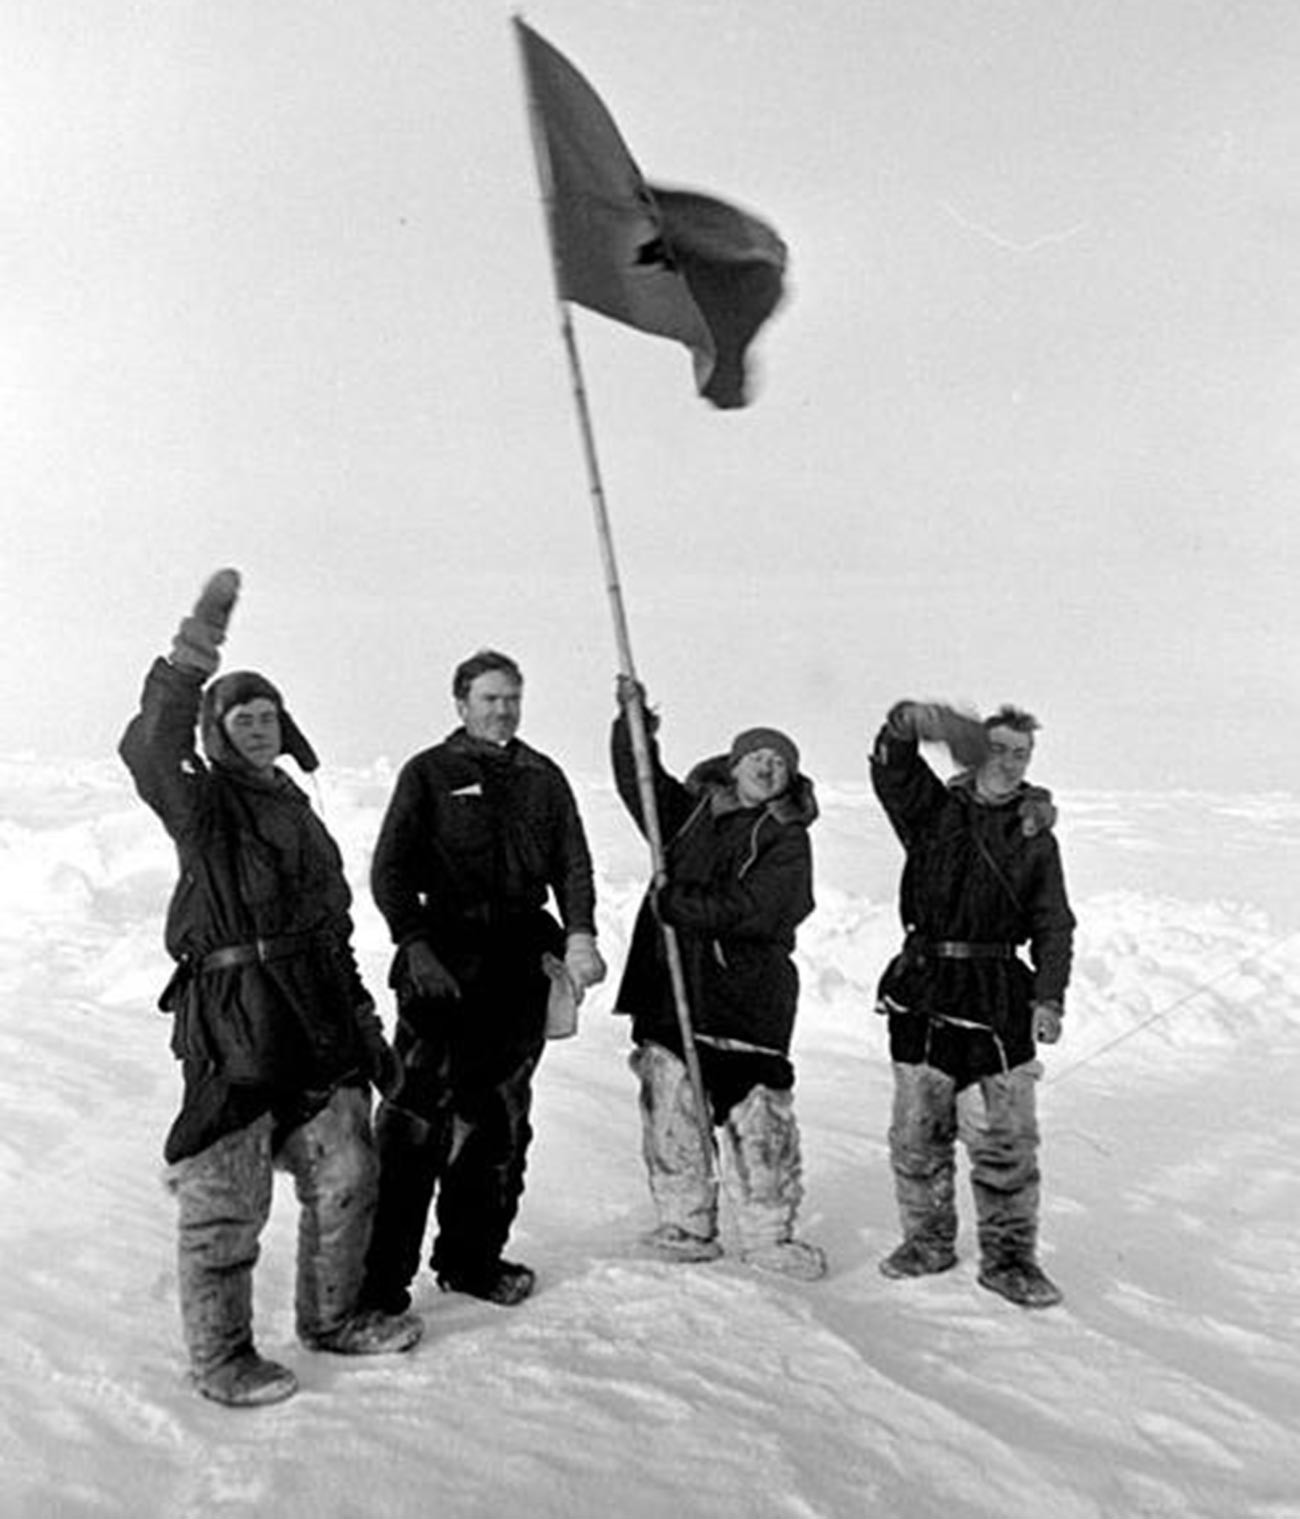 North Pole -1 expedition members at the North Pole